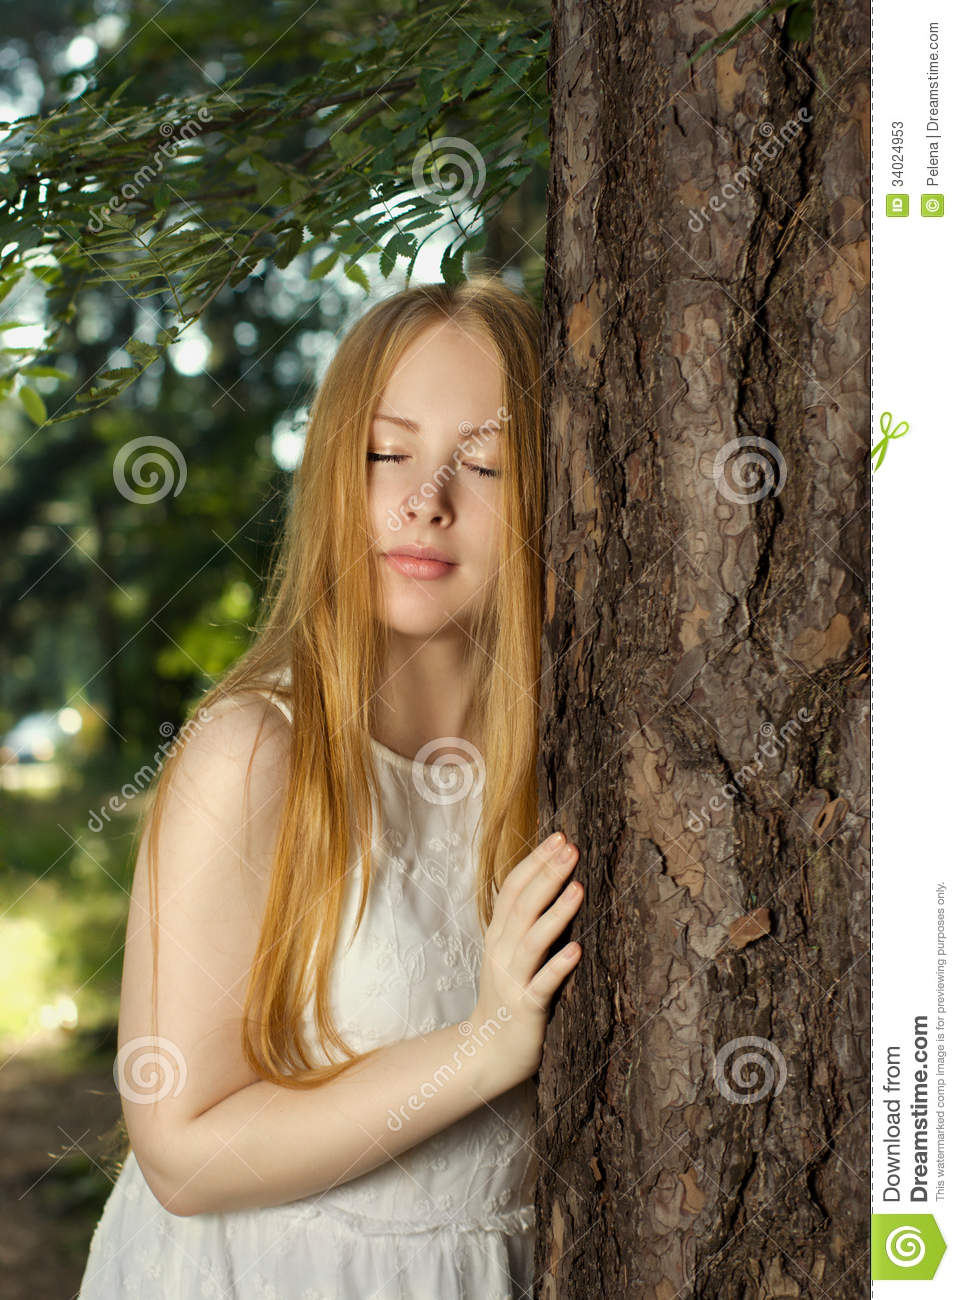 A Young Girl With Long Blond Hair Standing In The Forest